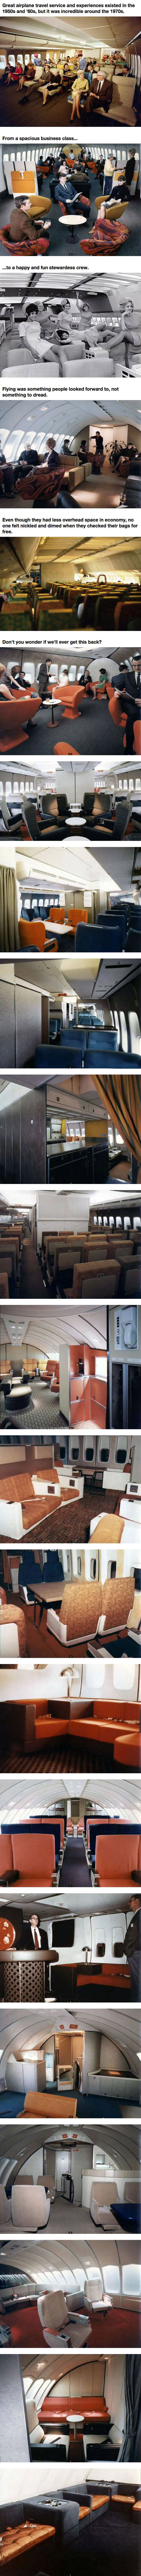 How Airplane Travel Was In The 1970s